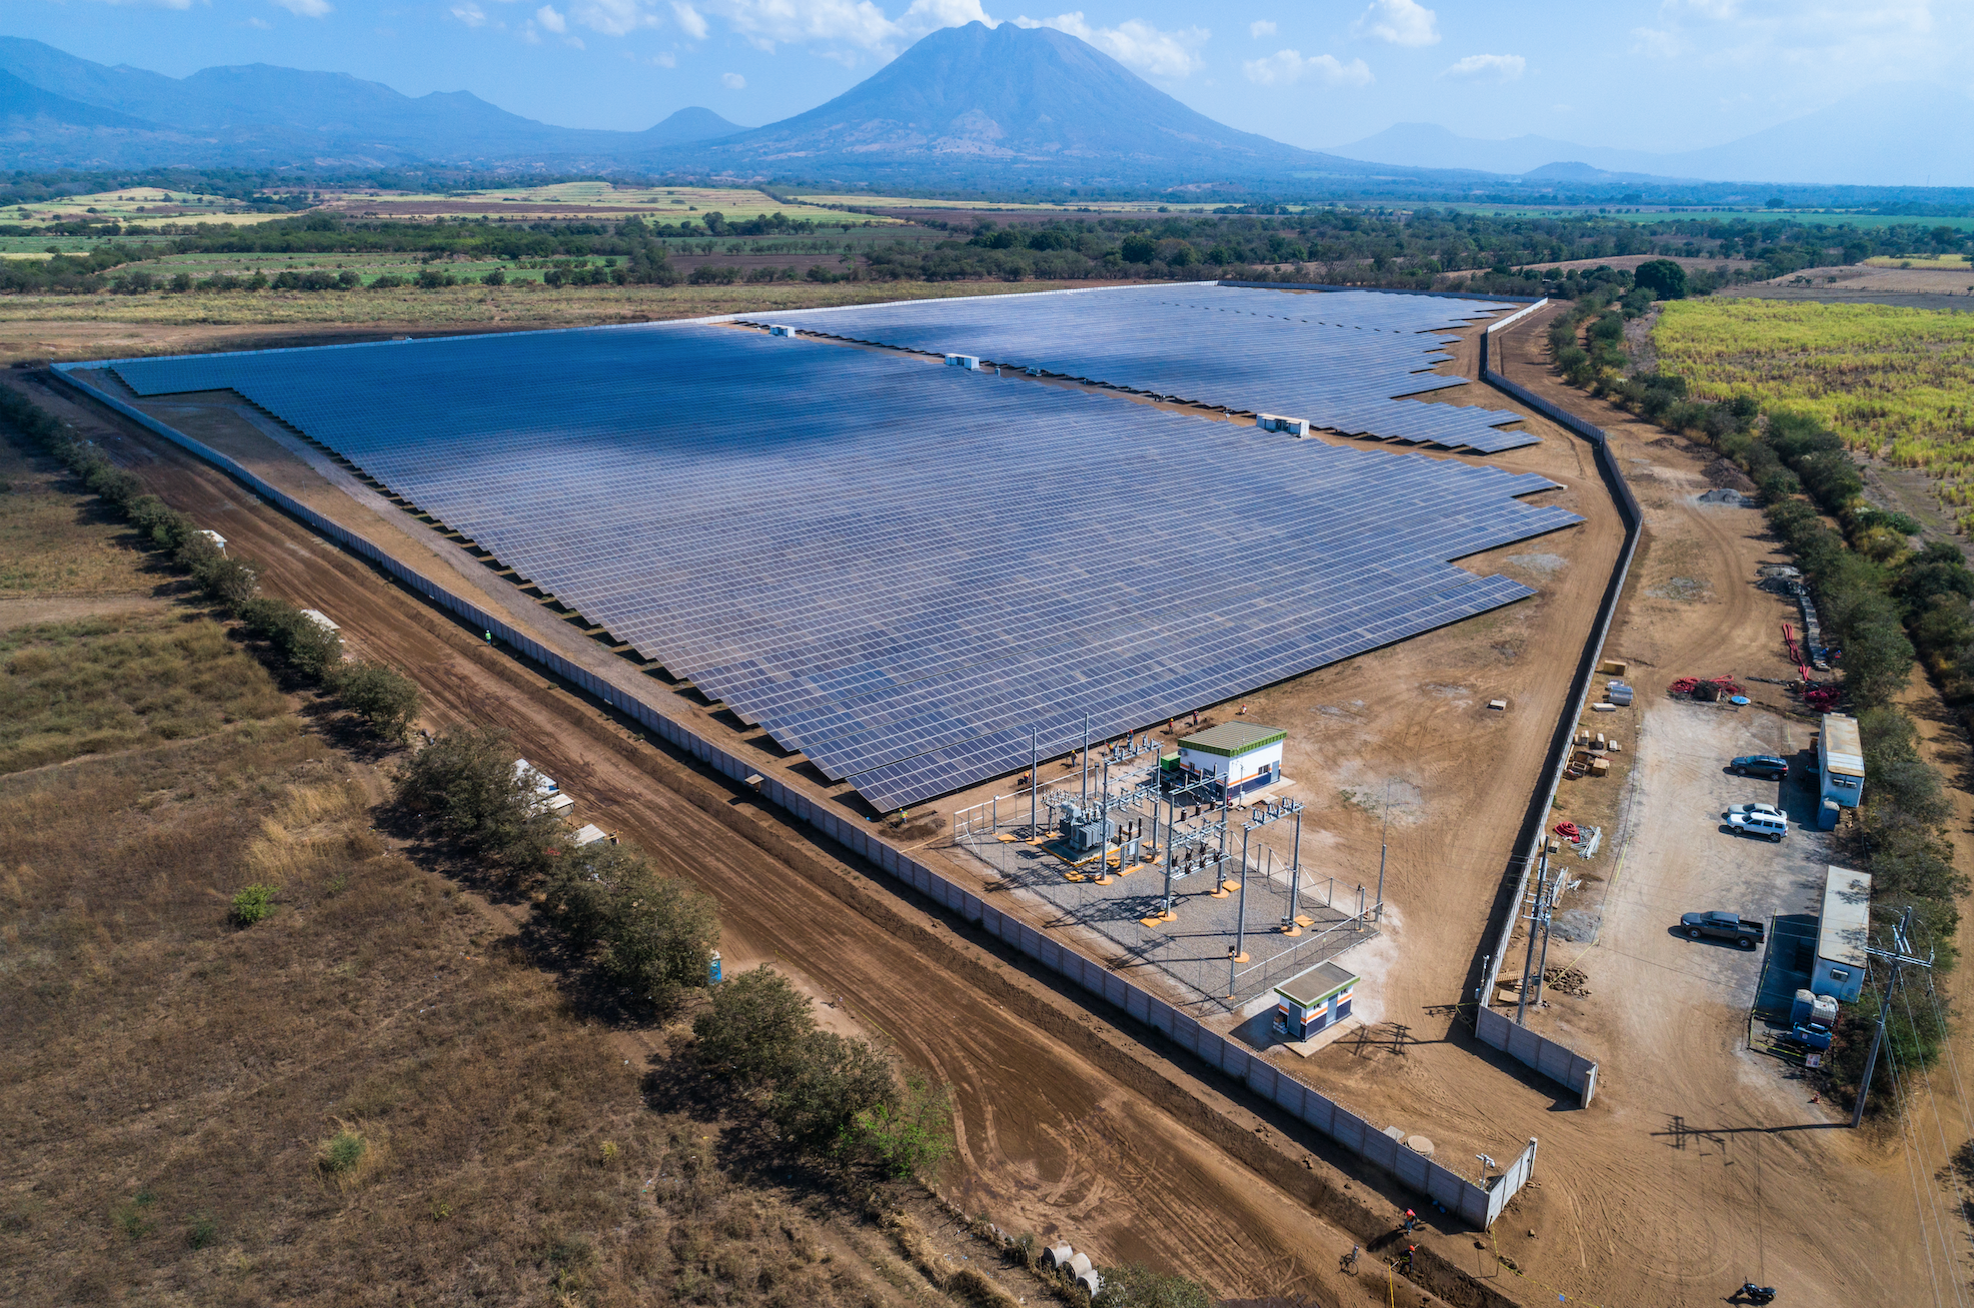 ISOTRON puts into service the second phase of Bósforo Project in El Salvador